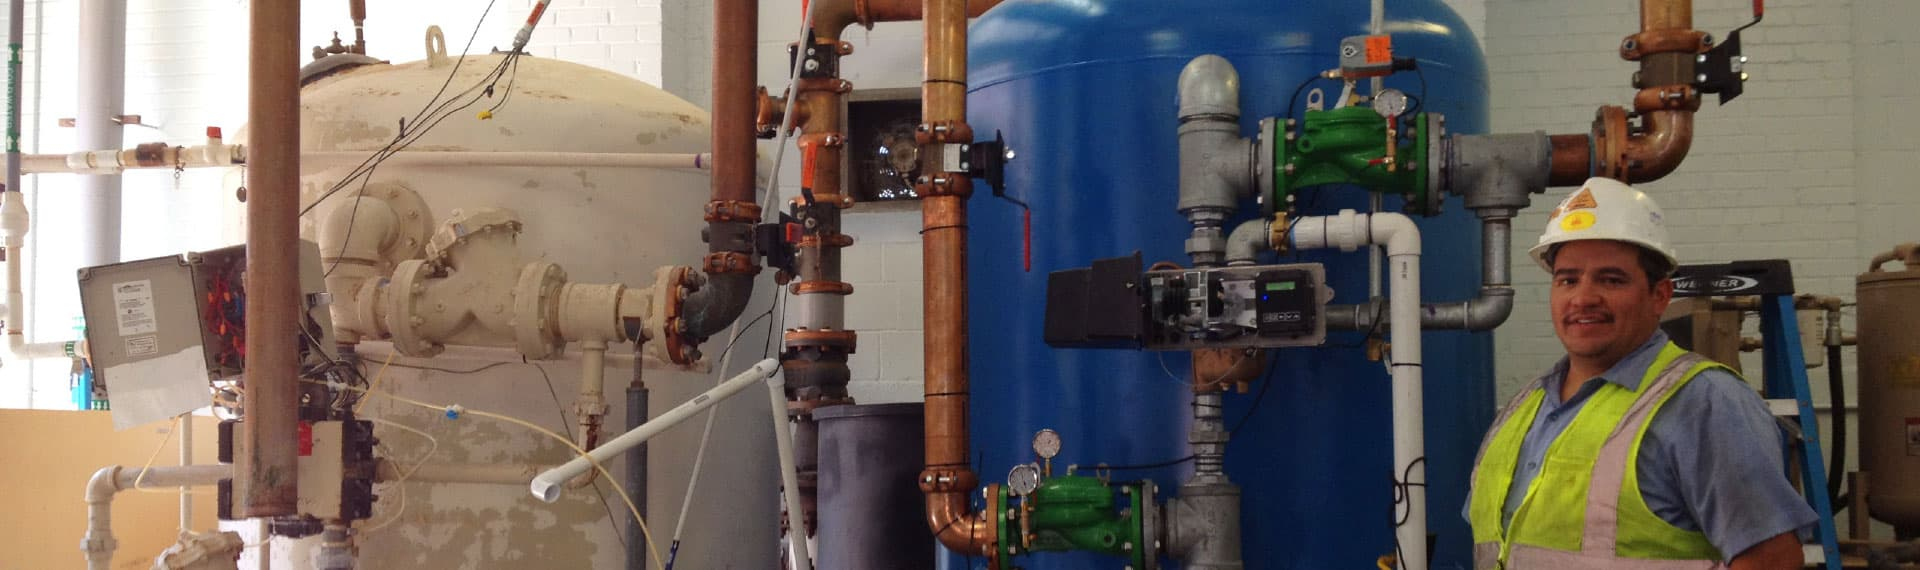 Raypak boilers| hydromatic pumps | commercial water softeners | Heat & Treat expert technician | Heat & Treat Texas